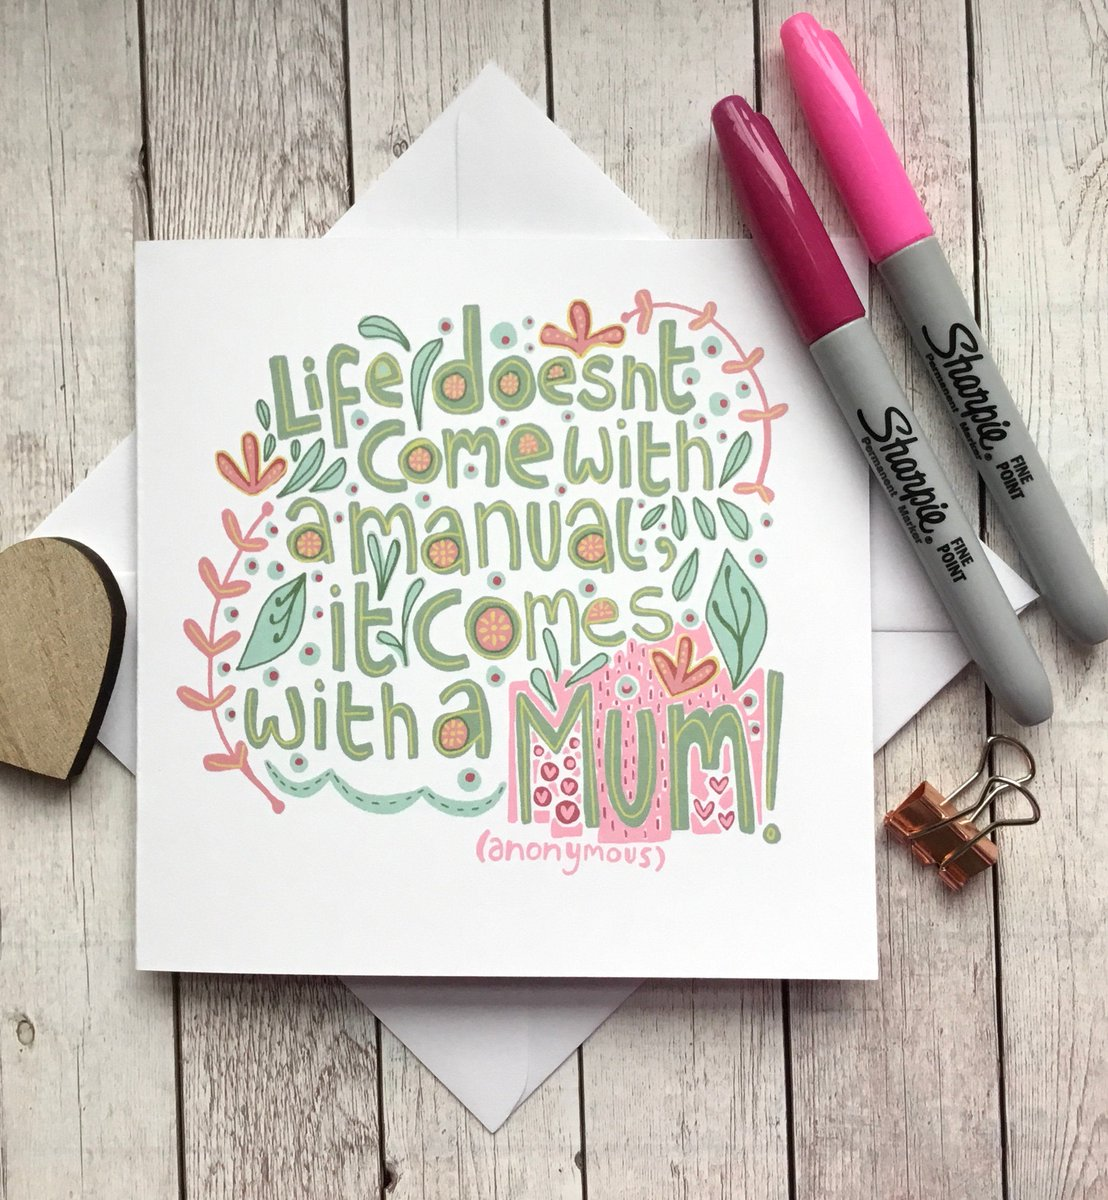 Mother's Day Quote Card - Life Doesn't Come With A Manual It Comes With A Mum - Card For Mum - Illustrated Card - Hand Drawn Typography. https://t.co/4emi4BGCYA #Slumbermonkey #Etsy #HappyMothersDay https://t.co/dyWBt7nhVB